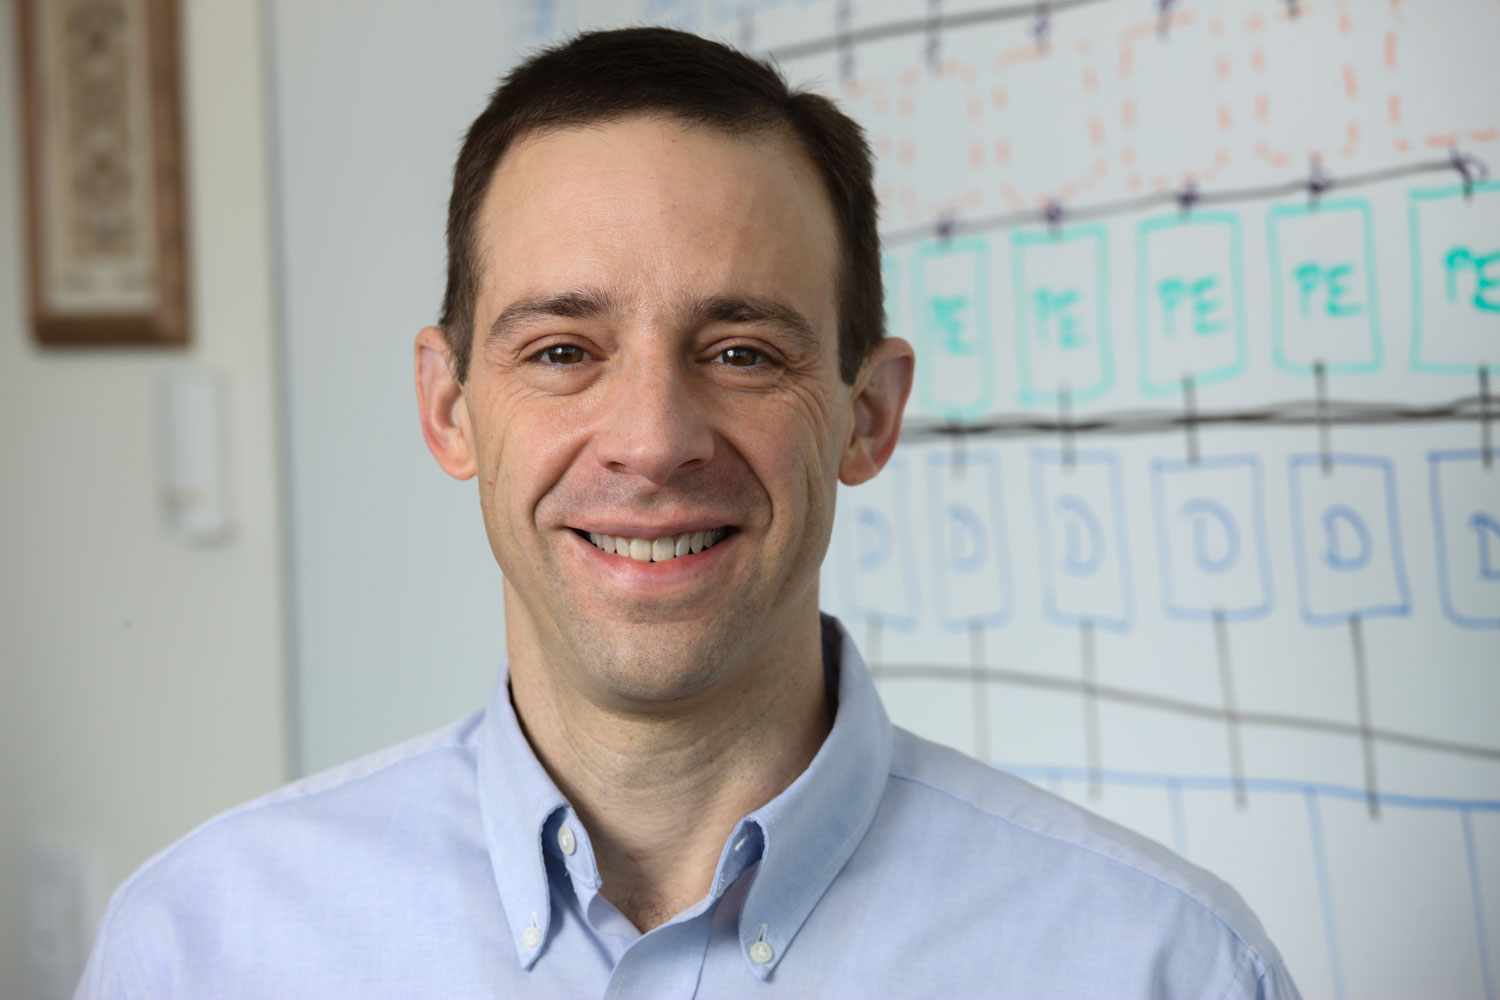 Kevin Skadron, who chairs the Department of Computer Science, will lead the new national Center for Research in Intelligent Storage and Processing in Memory.